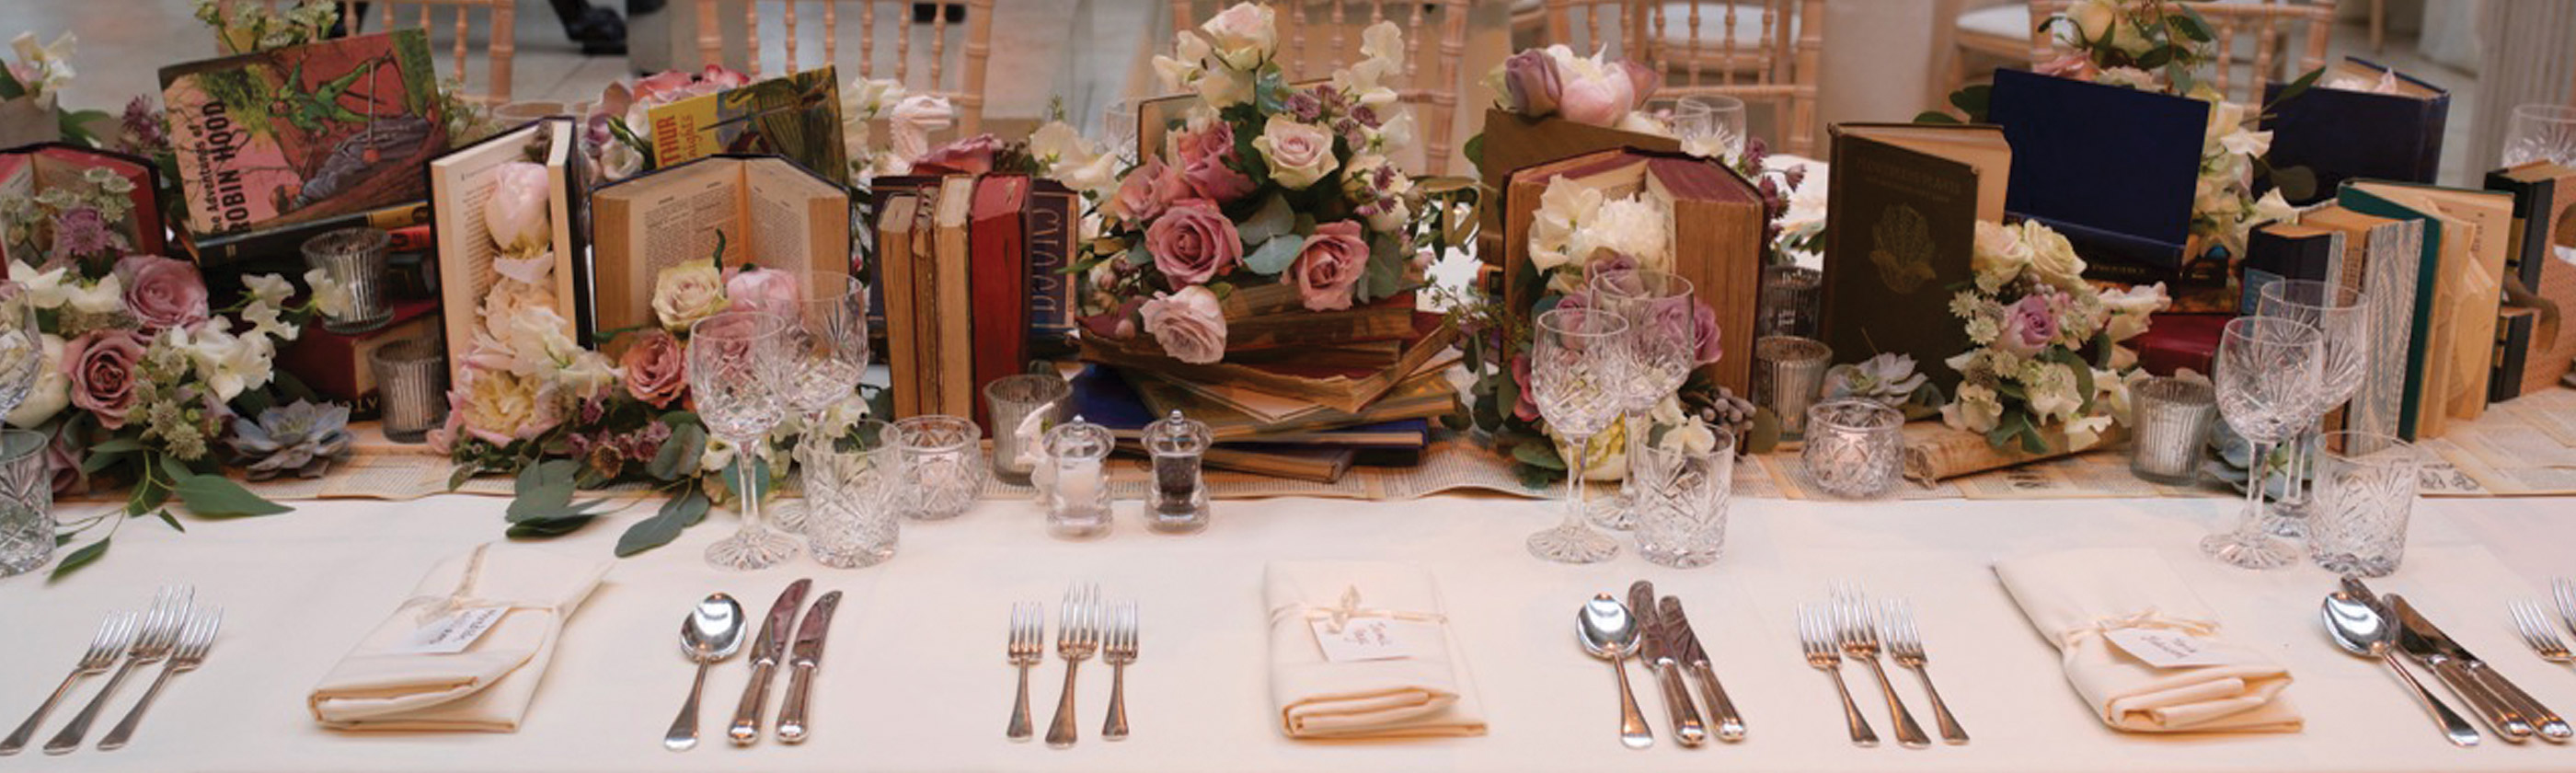 Photo of the head table at a wedding reception decorated with flowers and books